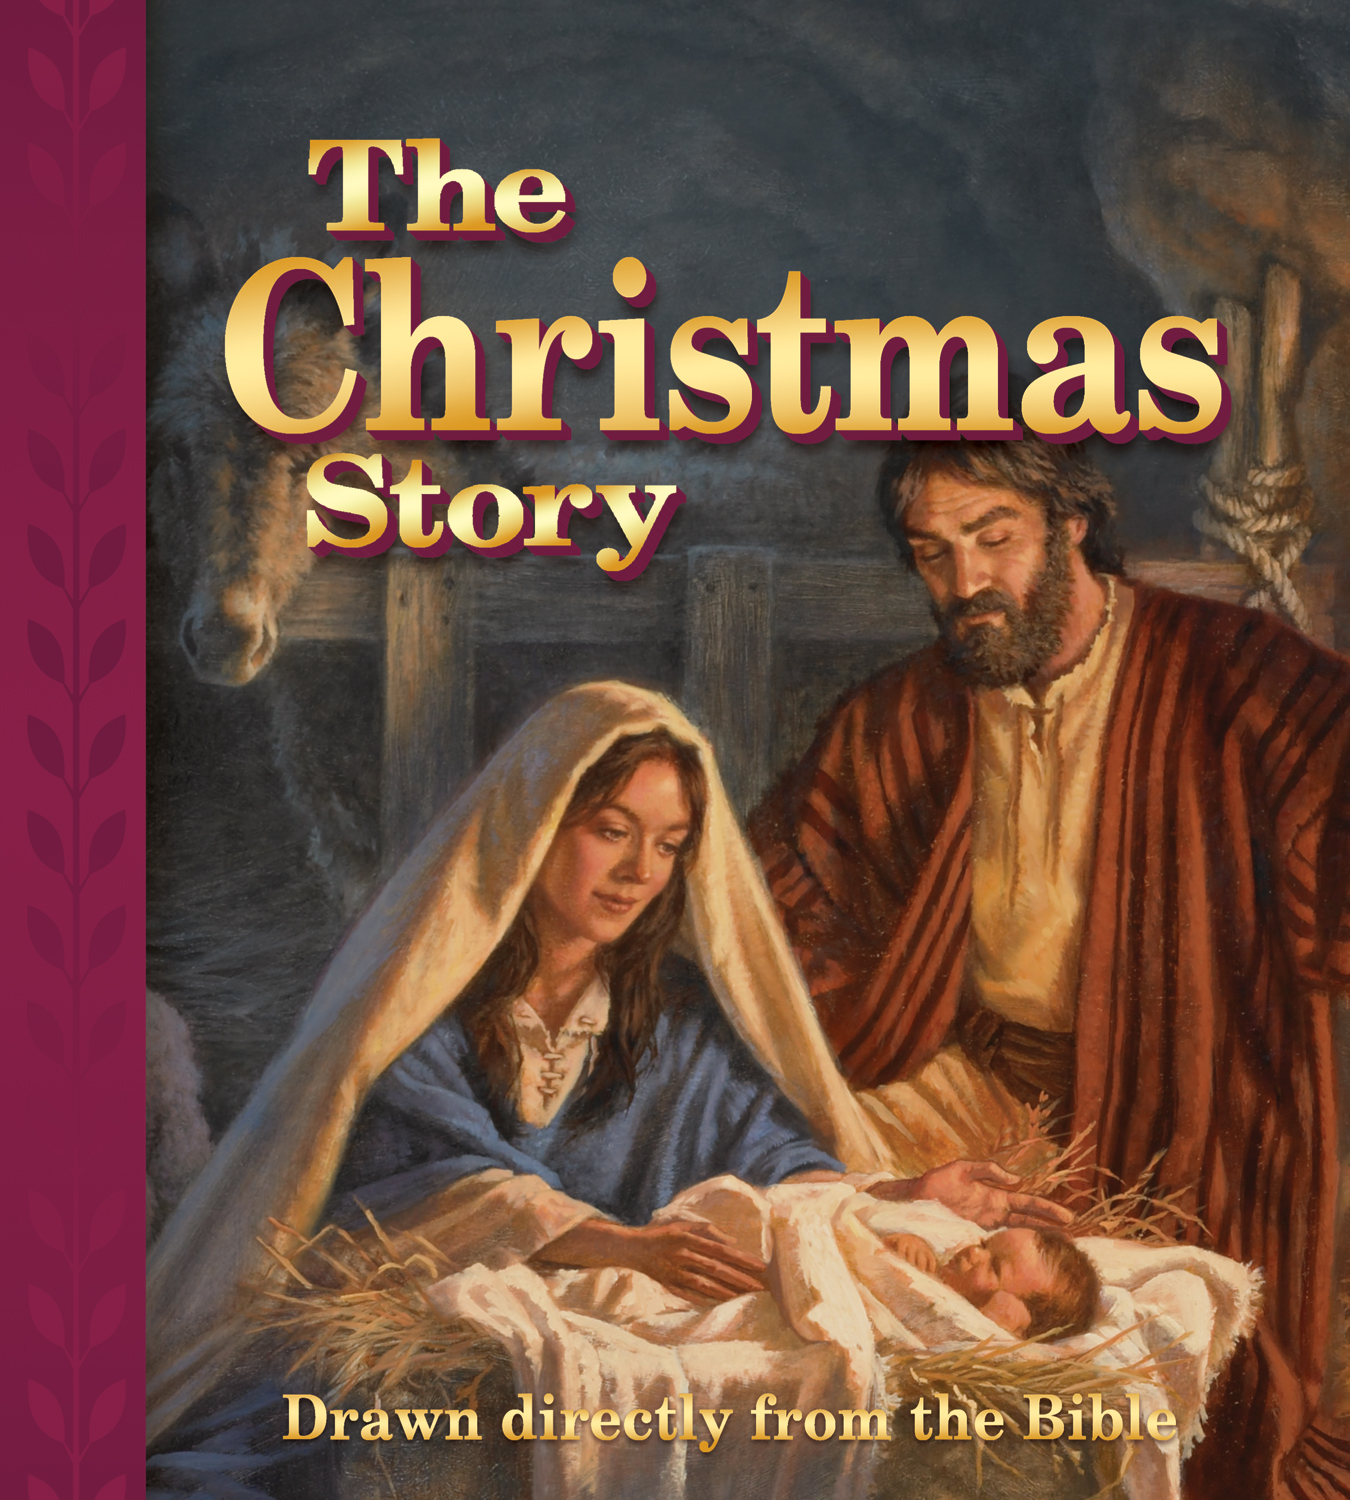 Bible Christmas Story.The Christmas Story Drawn Directly From The Bible